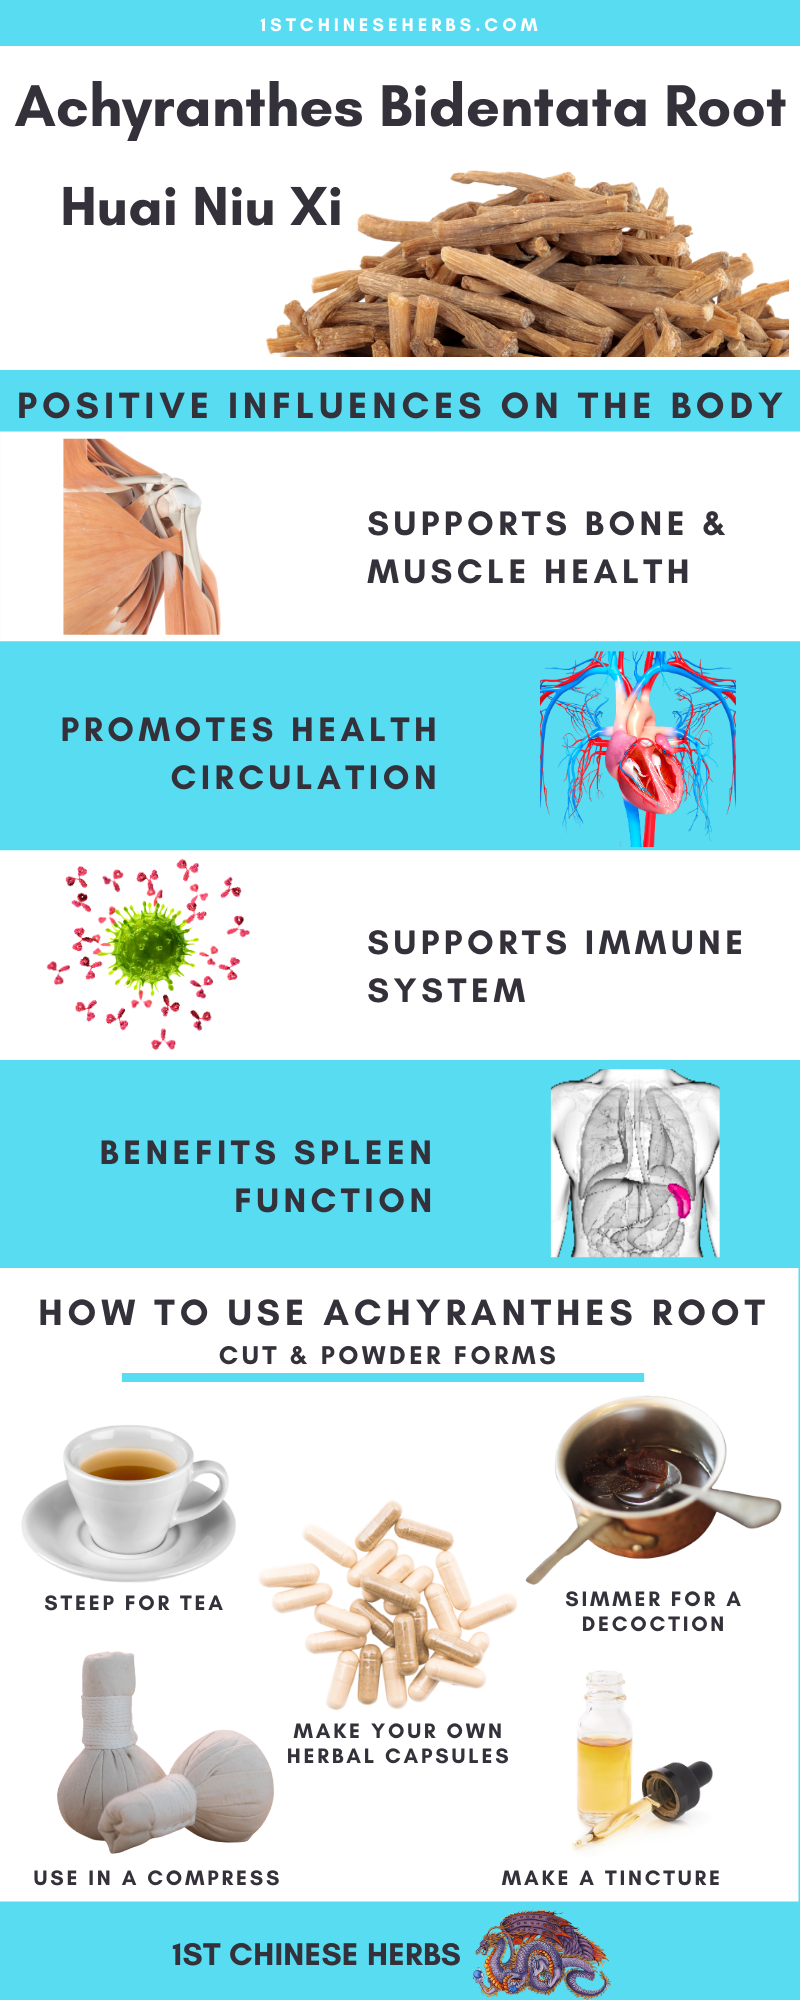 Huai Niu Xi benefits, Achyranthes bidentat root beneftis, how to use huai niu xi, how to use achyrantes Bidentata root